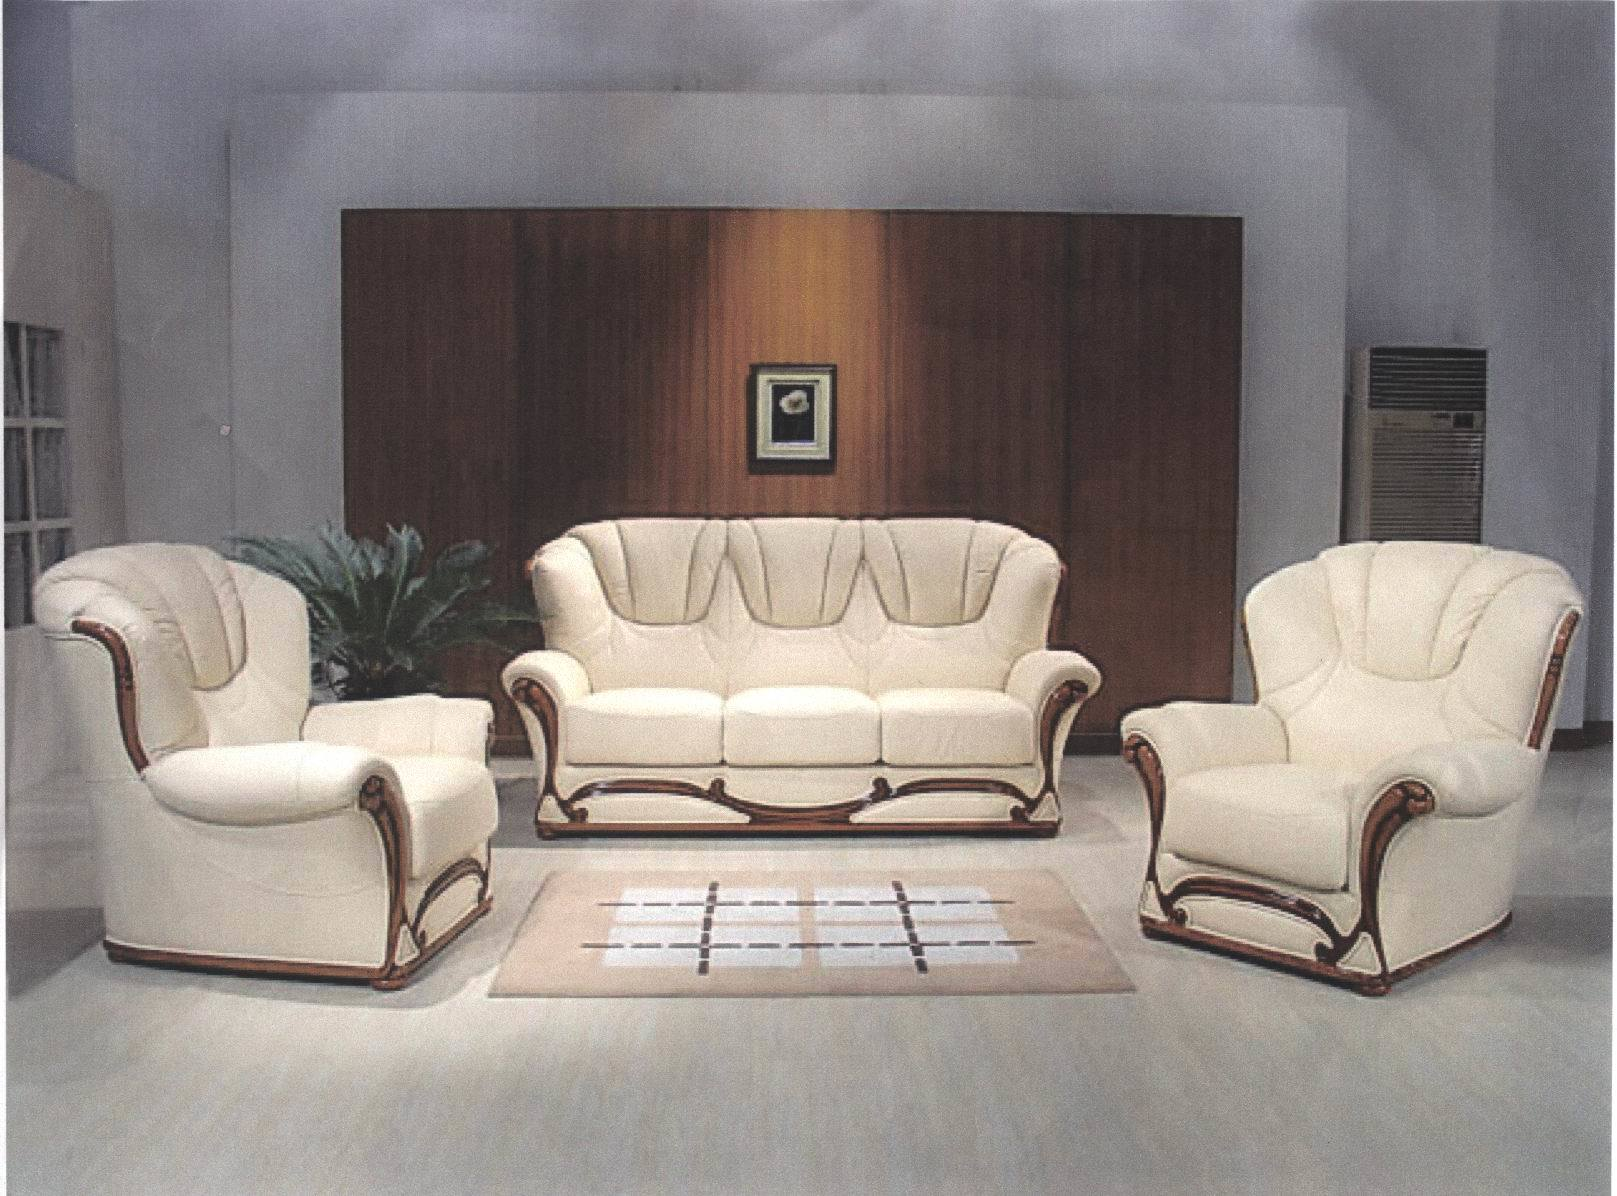 Olx Divani Divani Pin Italian Leather Sectional Sofas On Sale On Pinterest